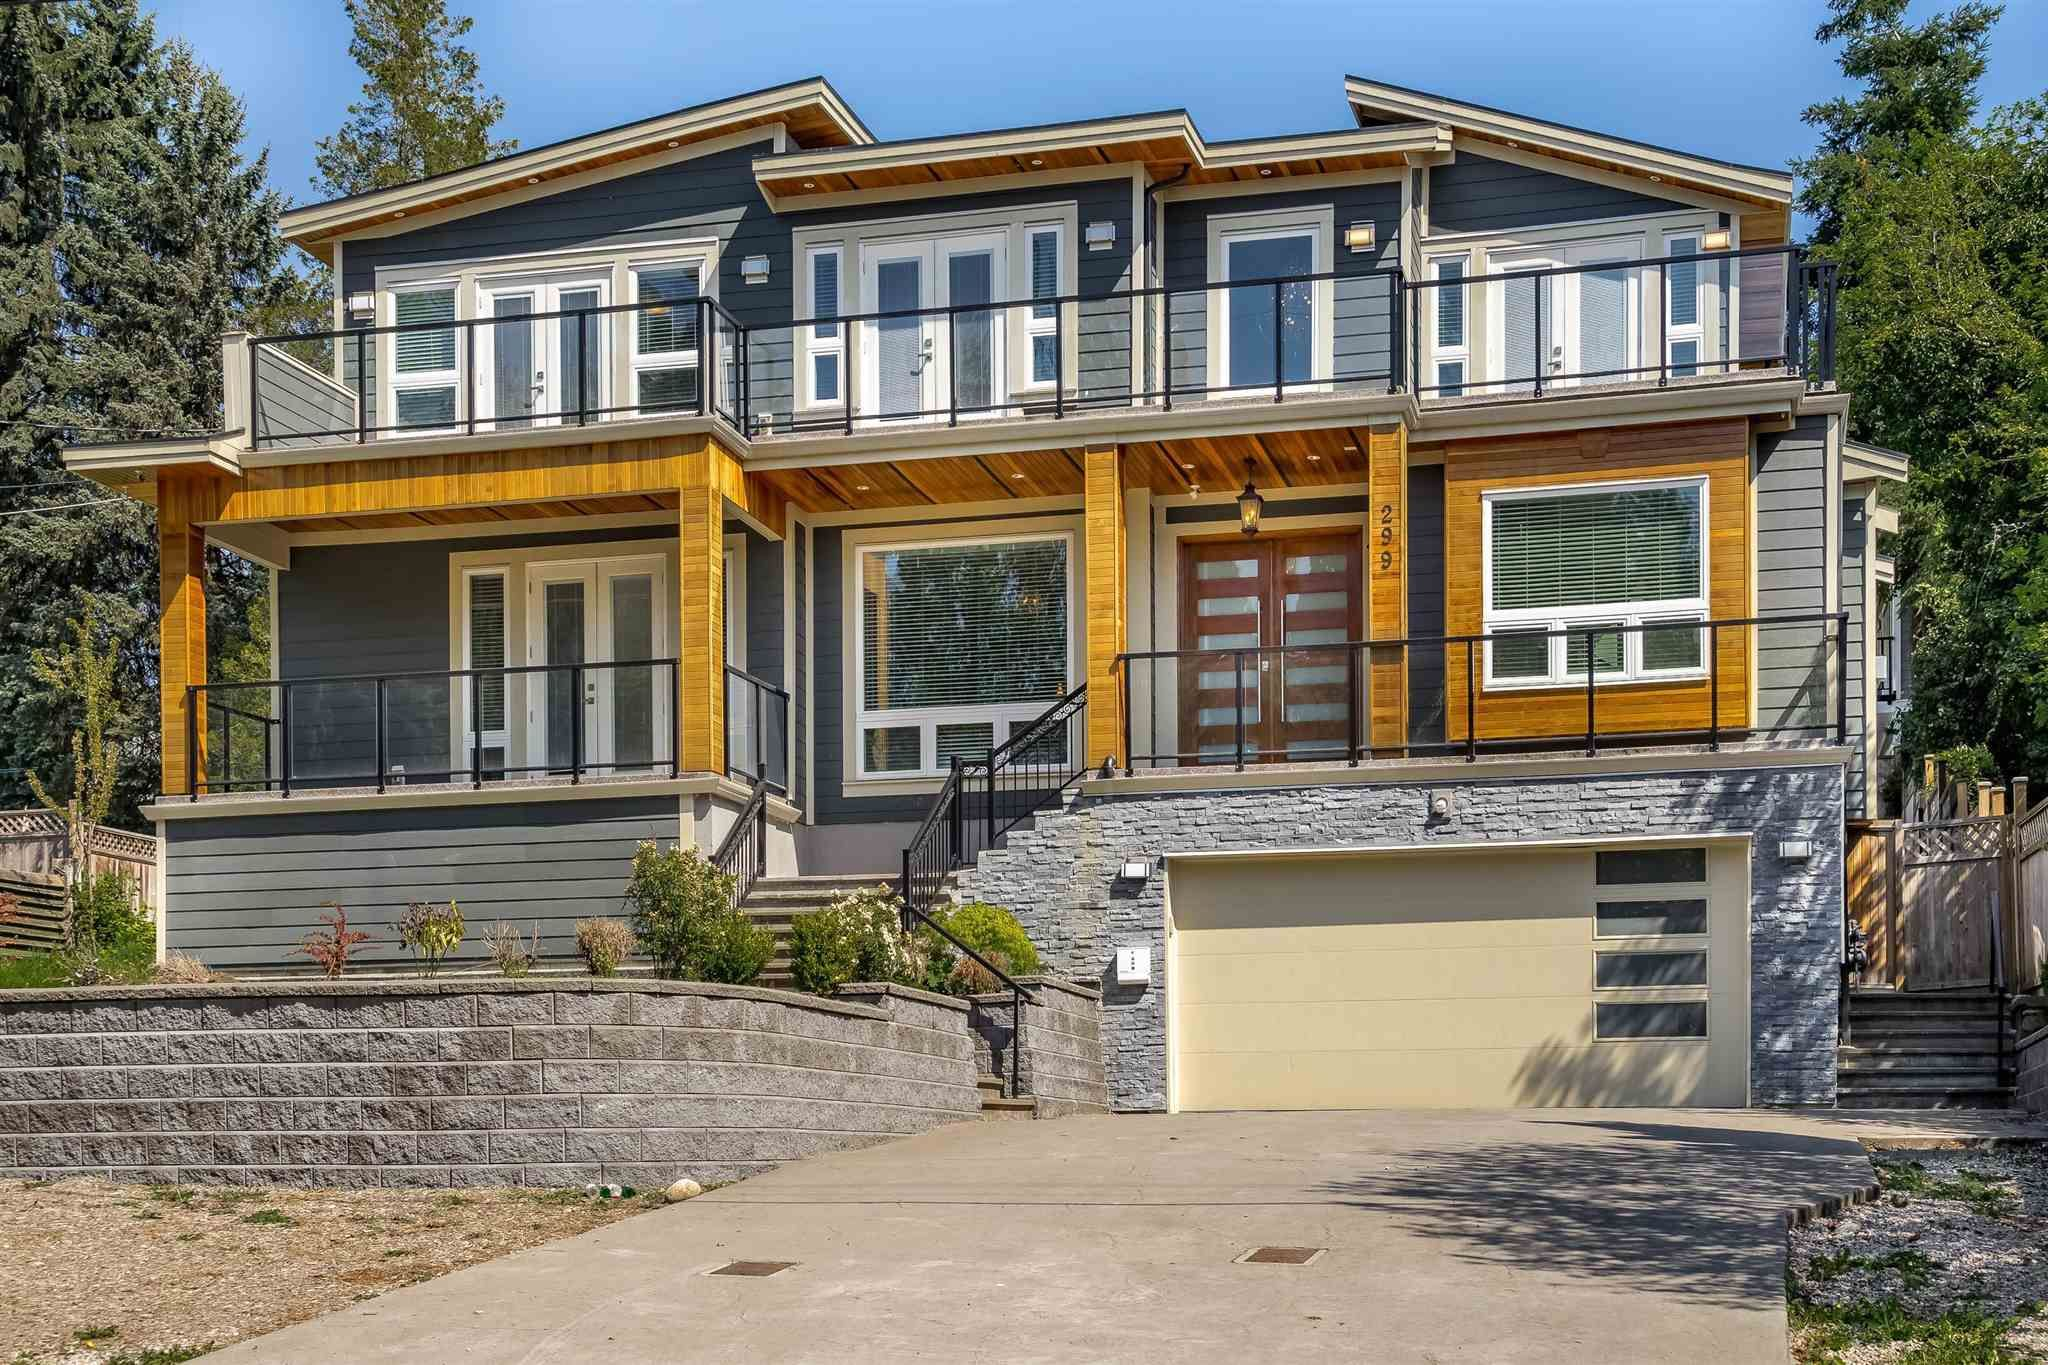 Main Photo: 299 MONTGOMERY Street in Coquitlam: Central Coquitlam House for sale : MLS®# R2598730